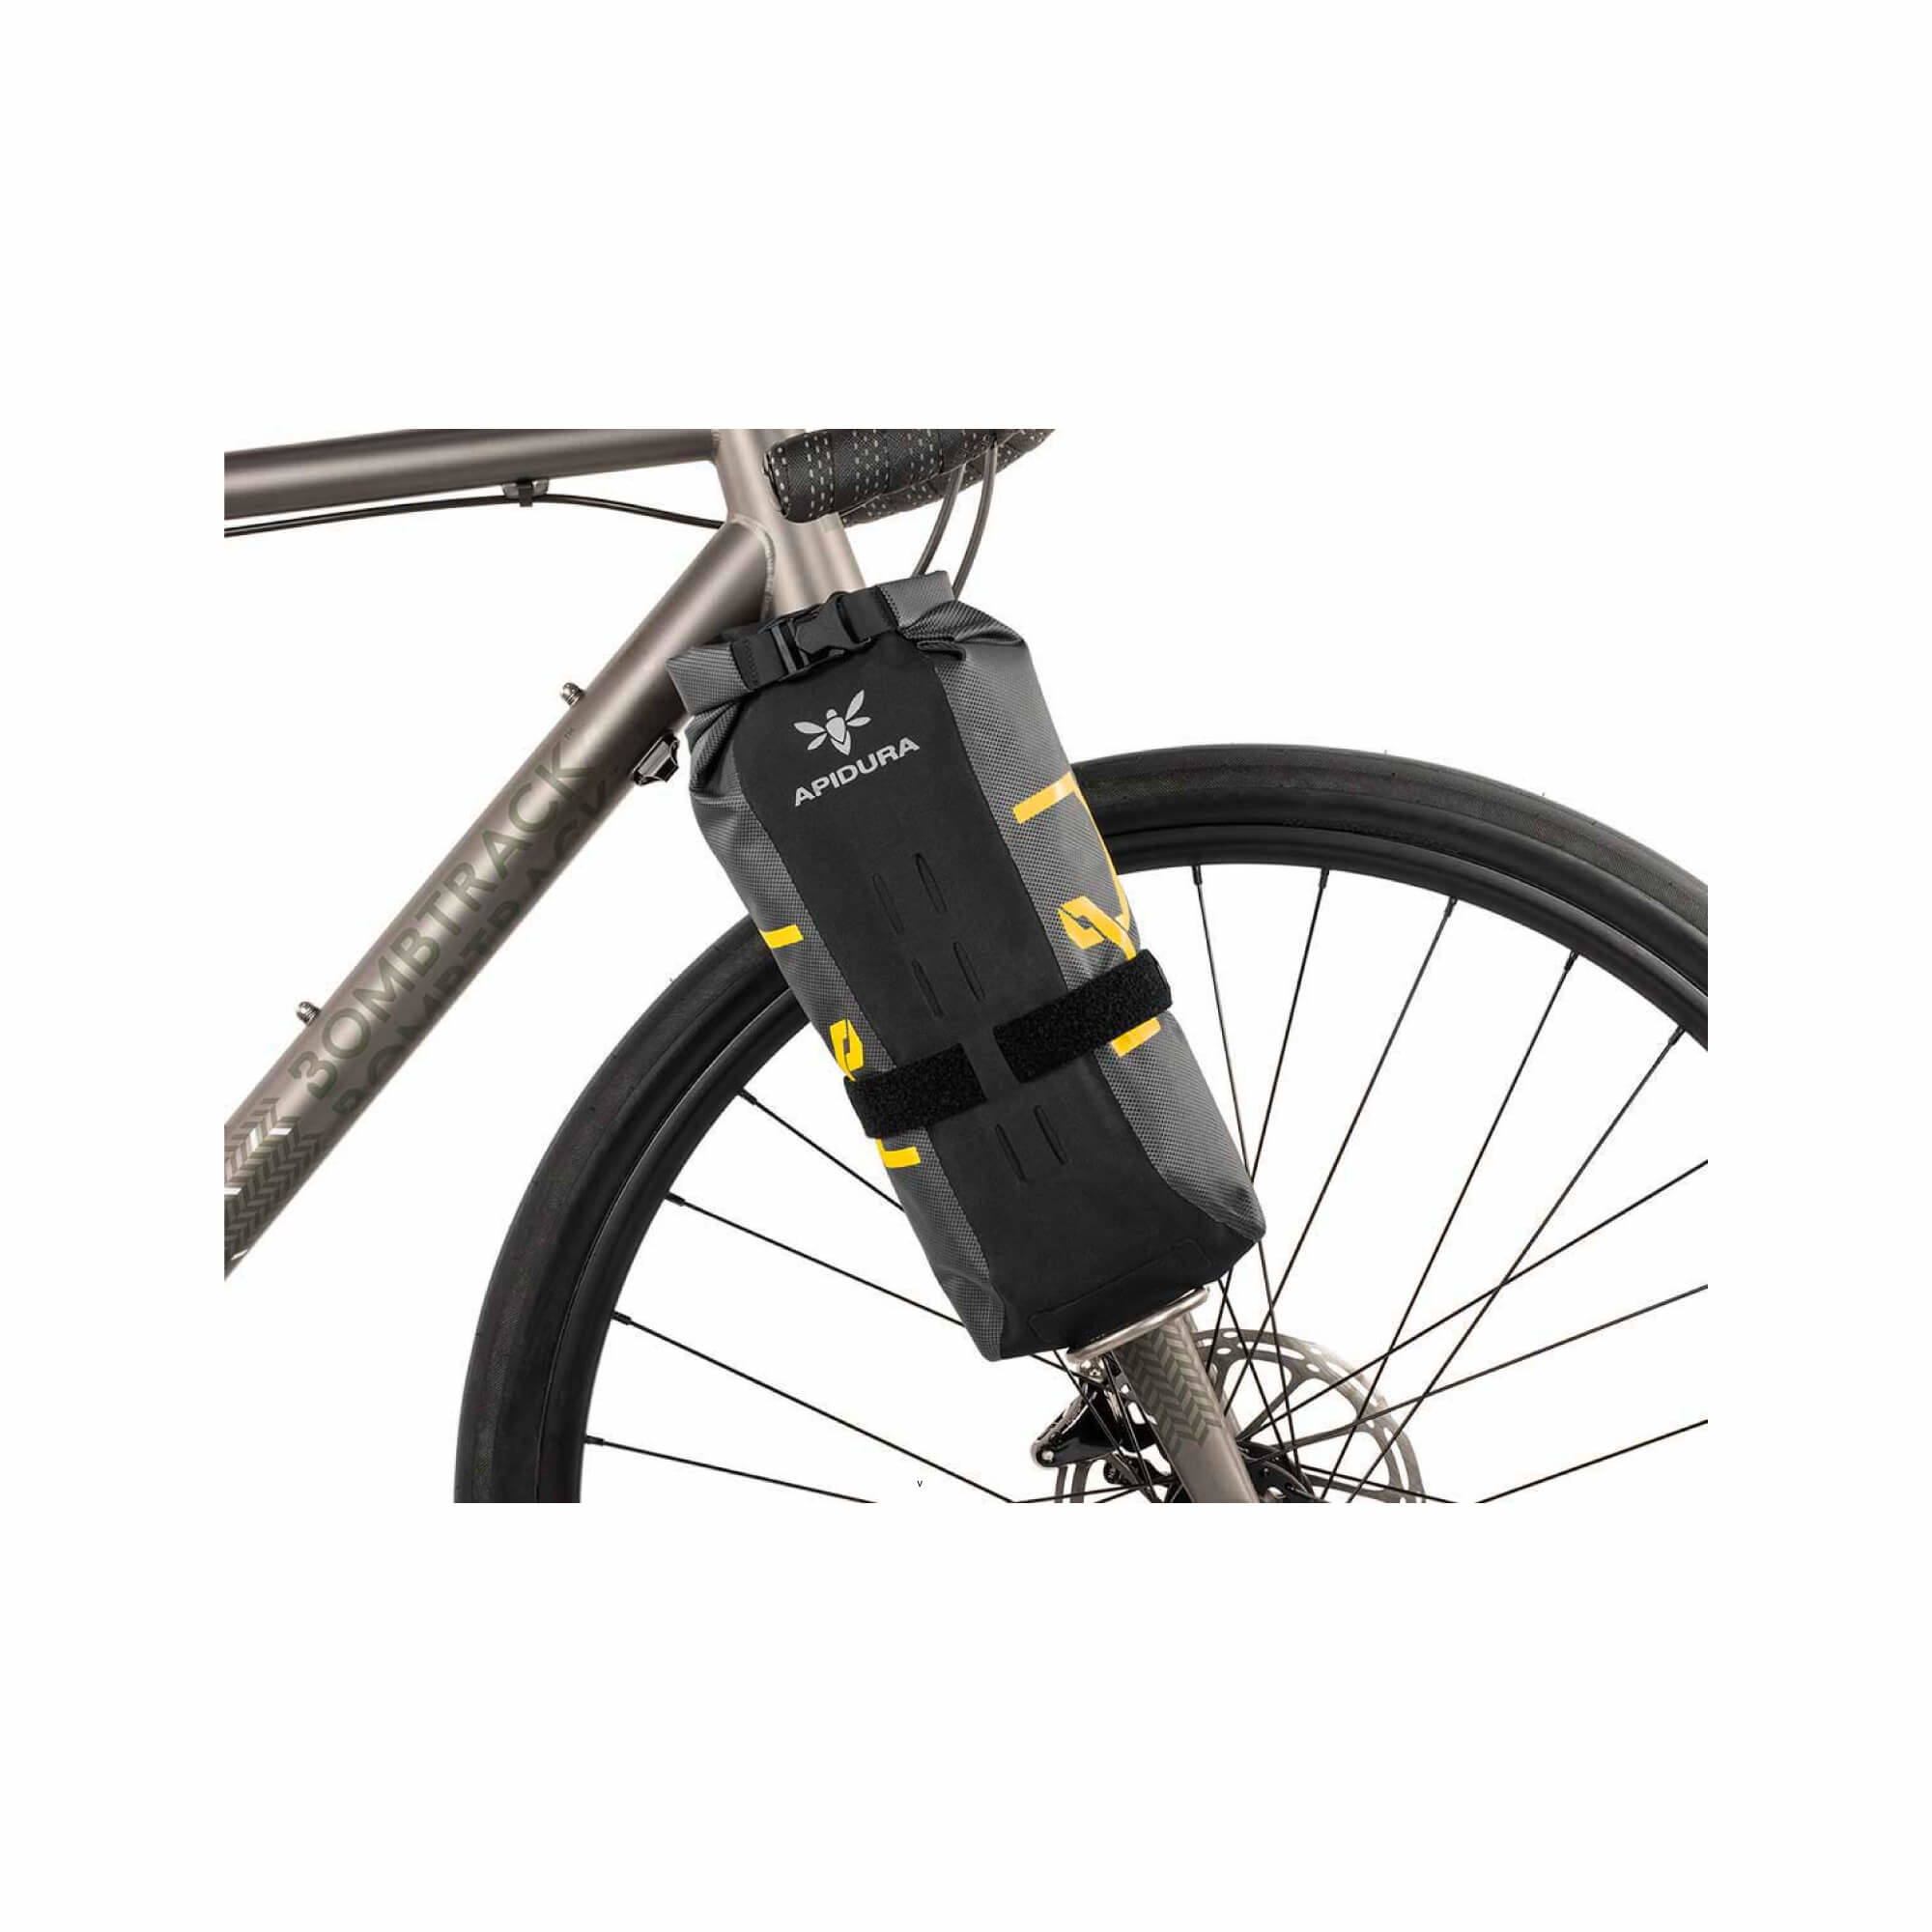 Expedition Fork Pack 4.5 L-3